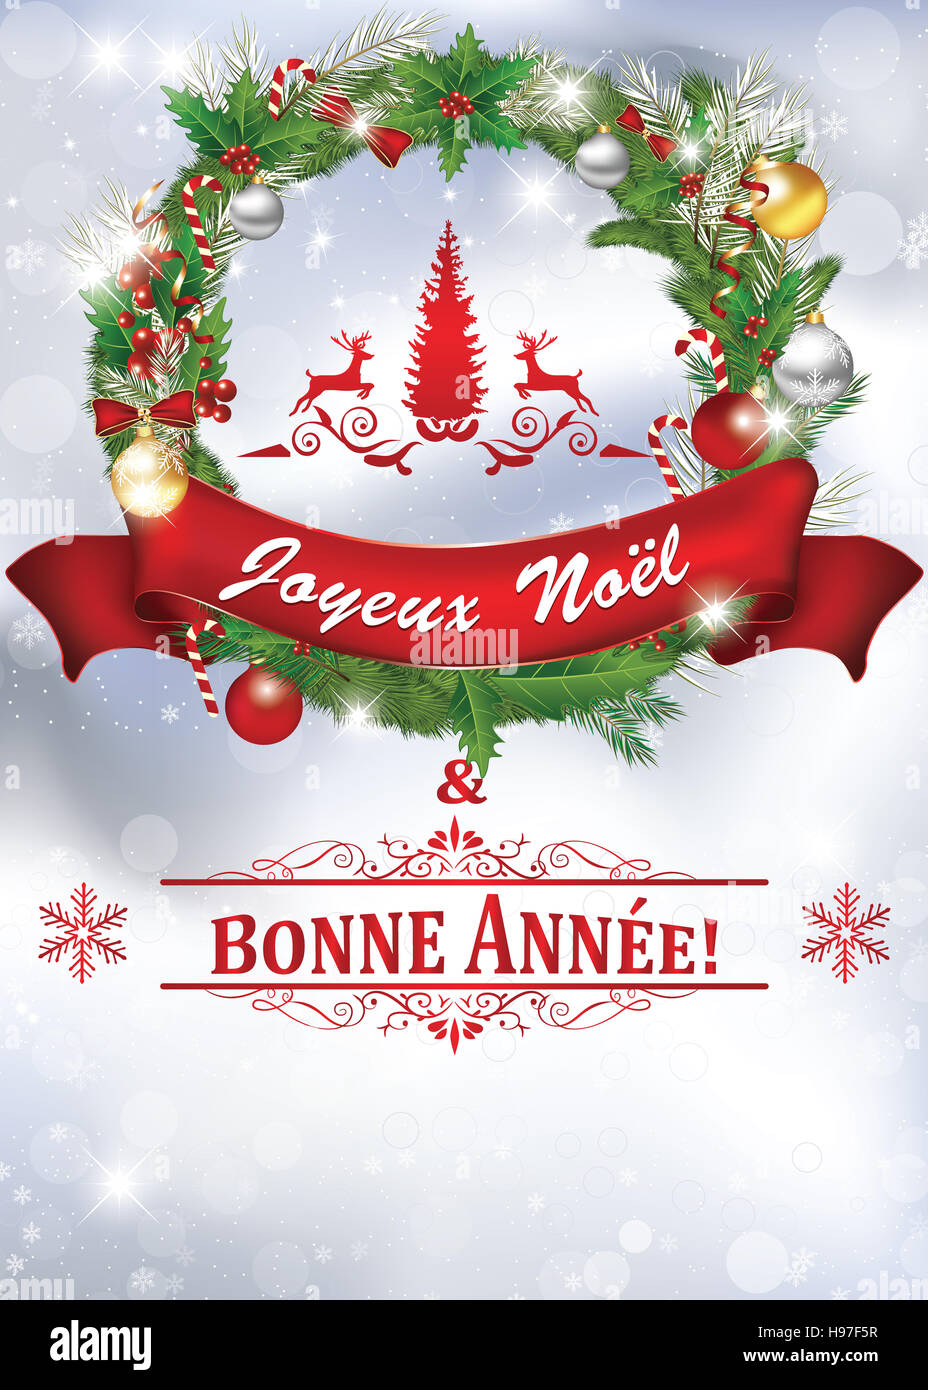 image about Printable New Year Cards named Printable Fresh new 12 months greeting card with concept within French